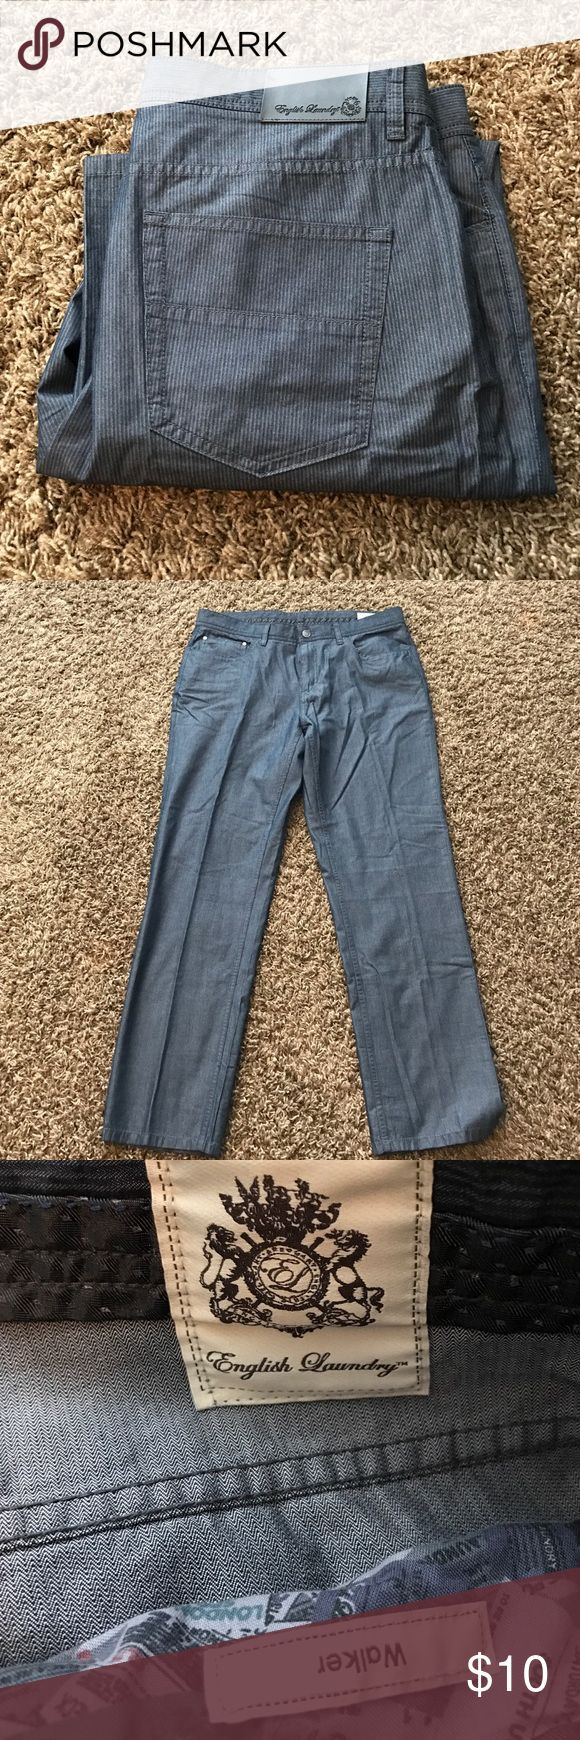 Men's English Laundry Pants Men's English Laundry Pants.  Very nice texture.  Perfect for a night out.  Blueish with Grayish stripes. Waist 36. Inseam 32 English Laundry Pants Chinos & Khakis